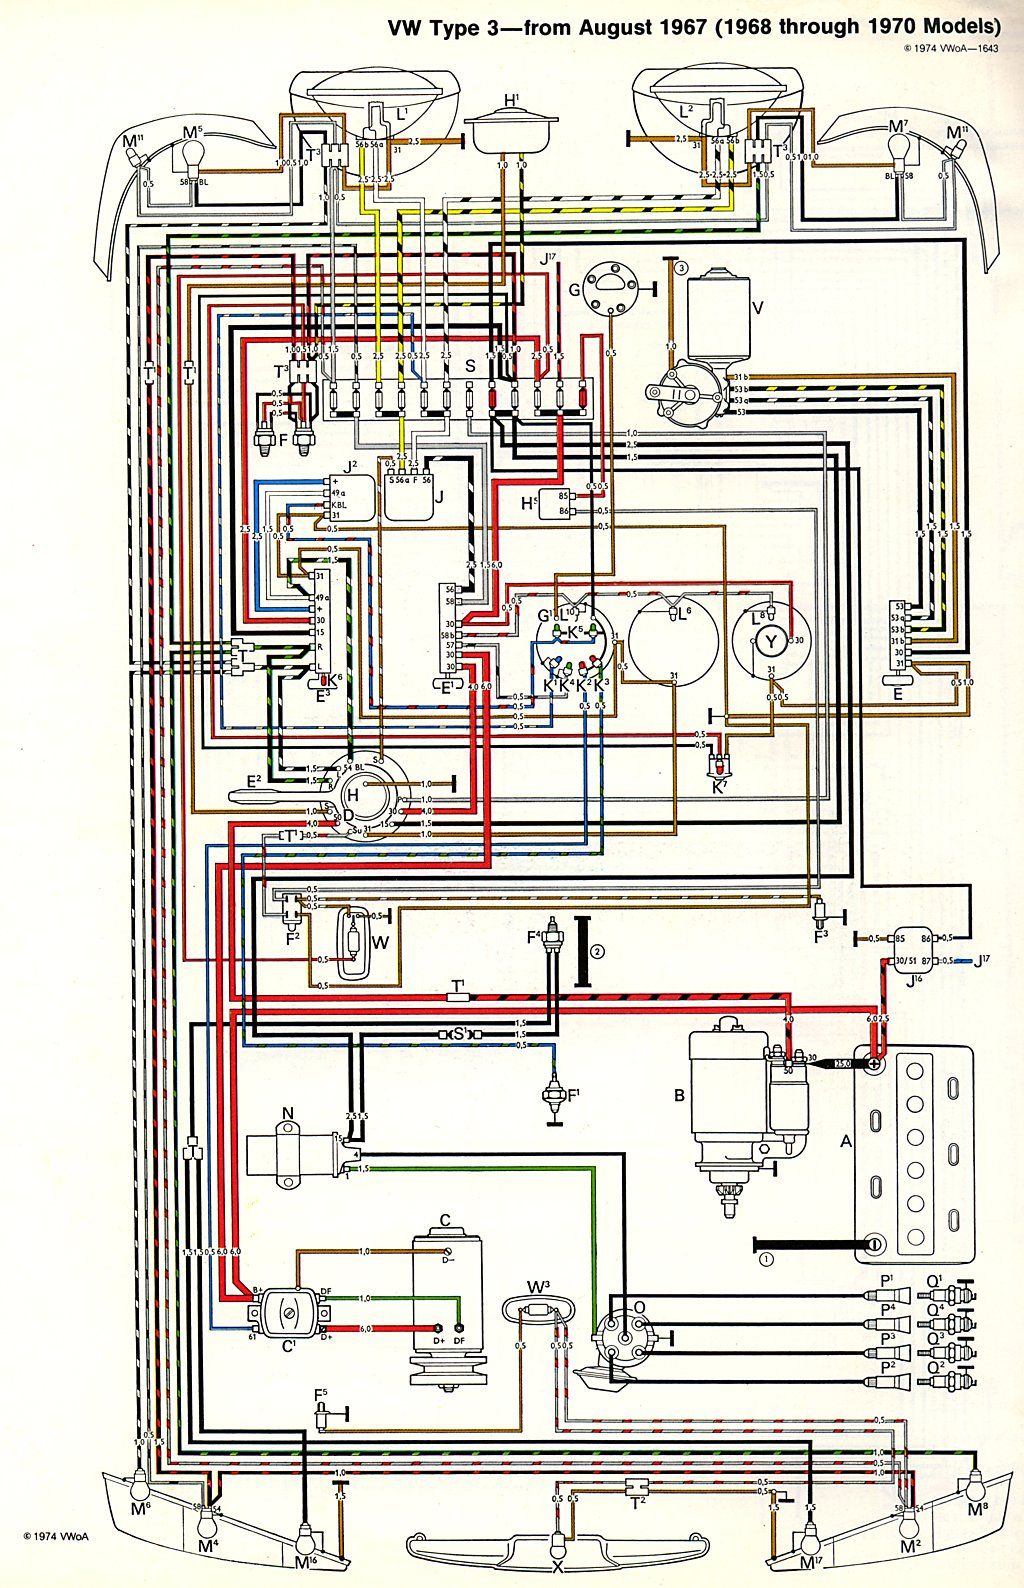 Bug Wiring Diagram | Wiring Diagram on 72 vw generator wiring diagram, 1971 vw bus wiring diagram, 1972 vw wiring diagram, 1972 vw beetle engine diagram, 72 vw wiring light, vw bug wiring diagram, 72 vw bug convertible, volkswagen beetle diagram, 72 vw engine diagram, 72 karmann ghia wiring diagram, 72 vw beetle fuse diagram, vw bus engine diagram, air cooled vw wiring diagram, vw 1600 engine diagram, 1973 vw wiring diagram, vw alternator diagram, super beetle engine diagram, 72 toyota corolla wiring diagram,